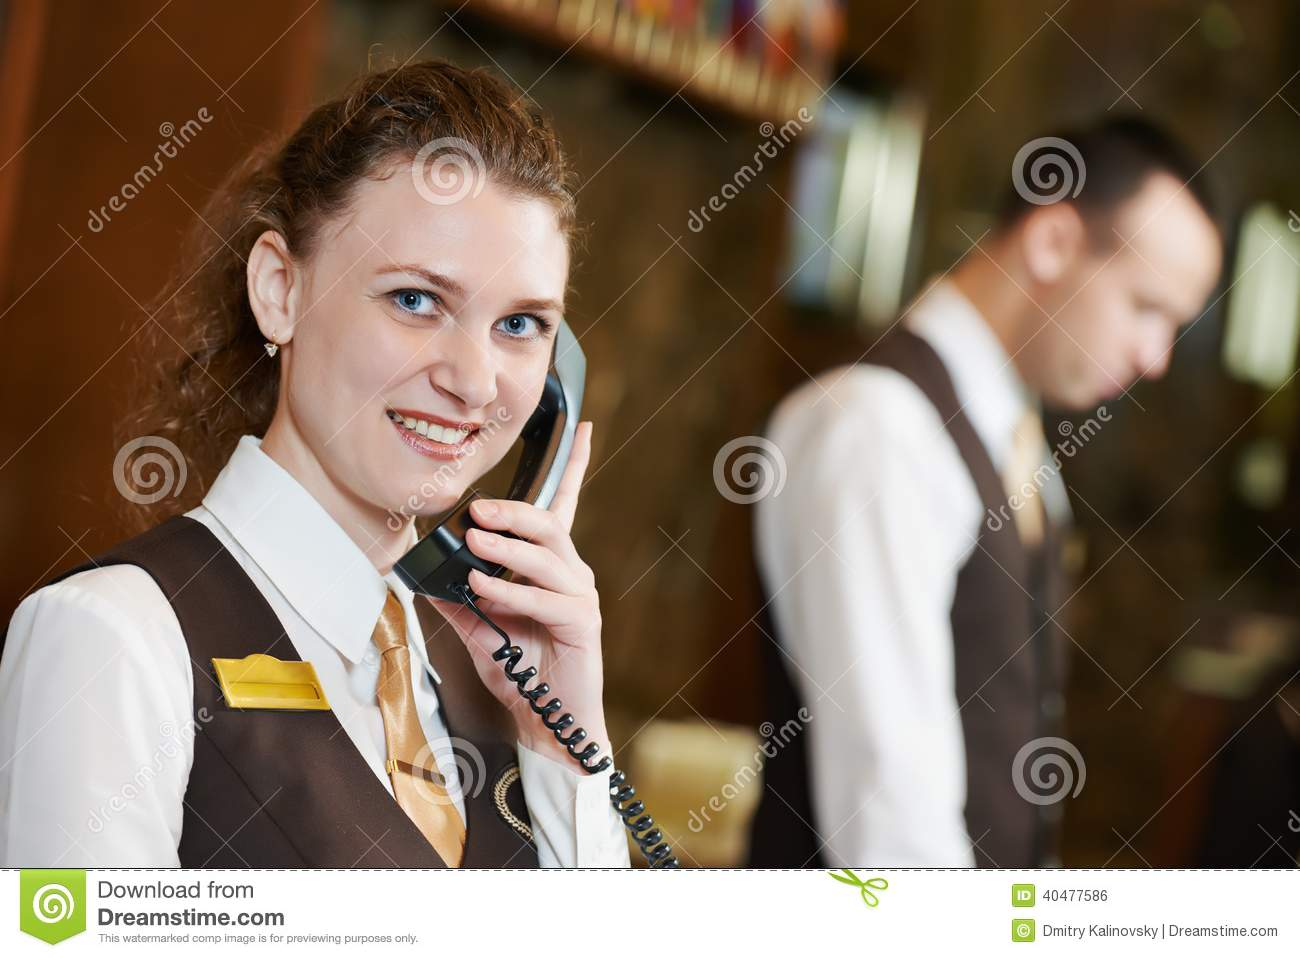 Hotel Worker With Phone On Reception Stock Photo - Image ...